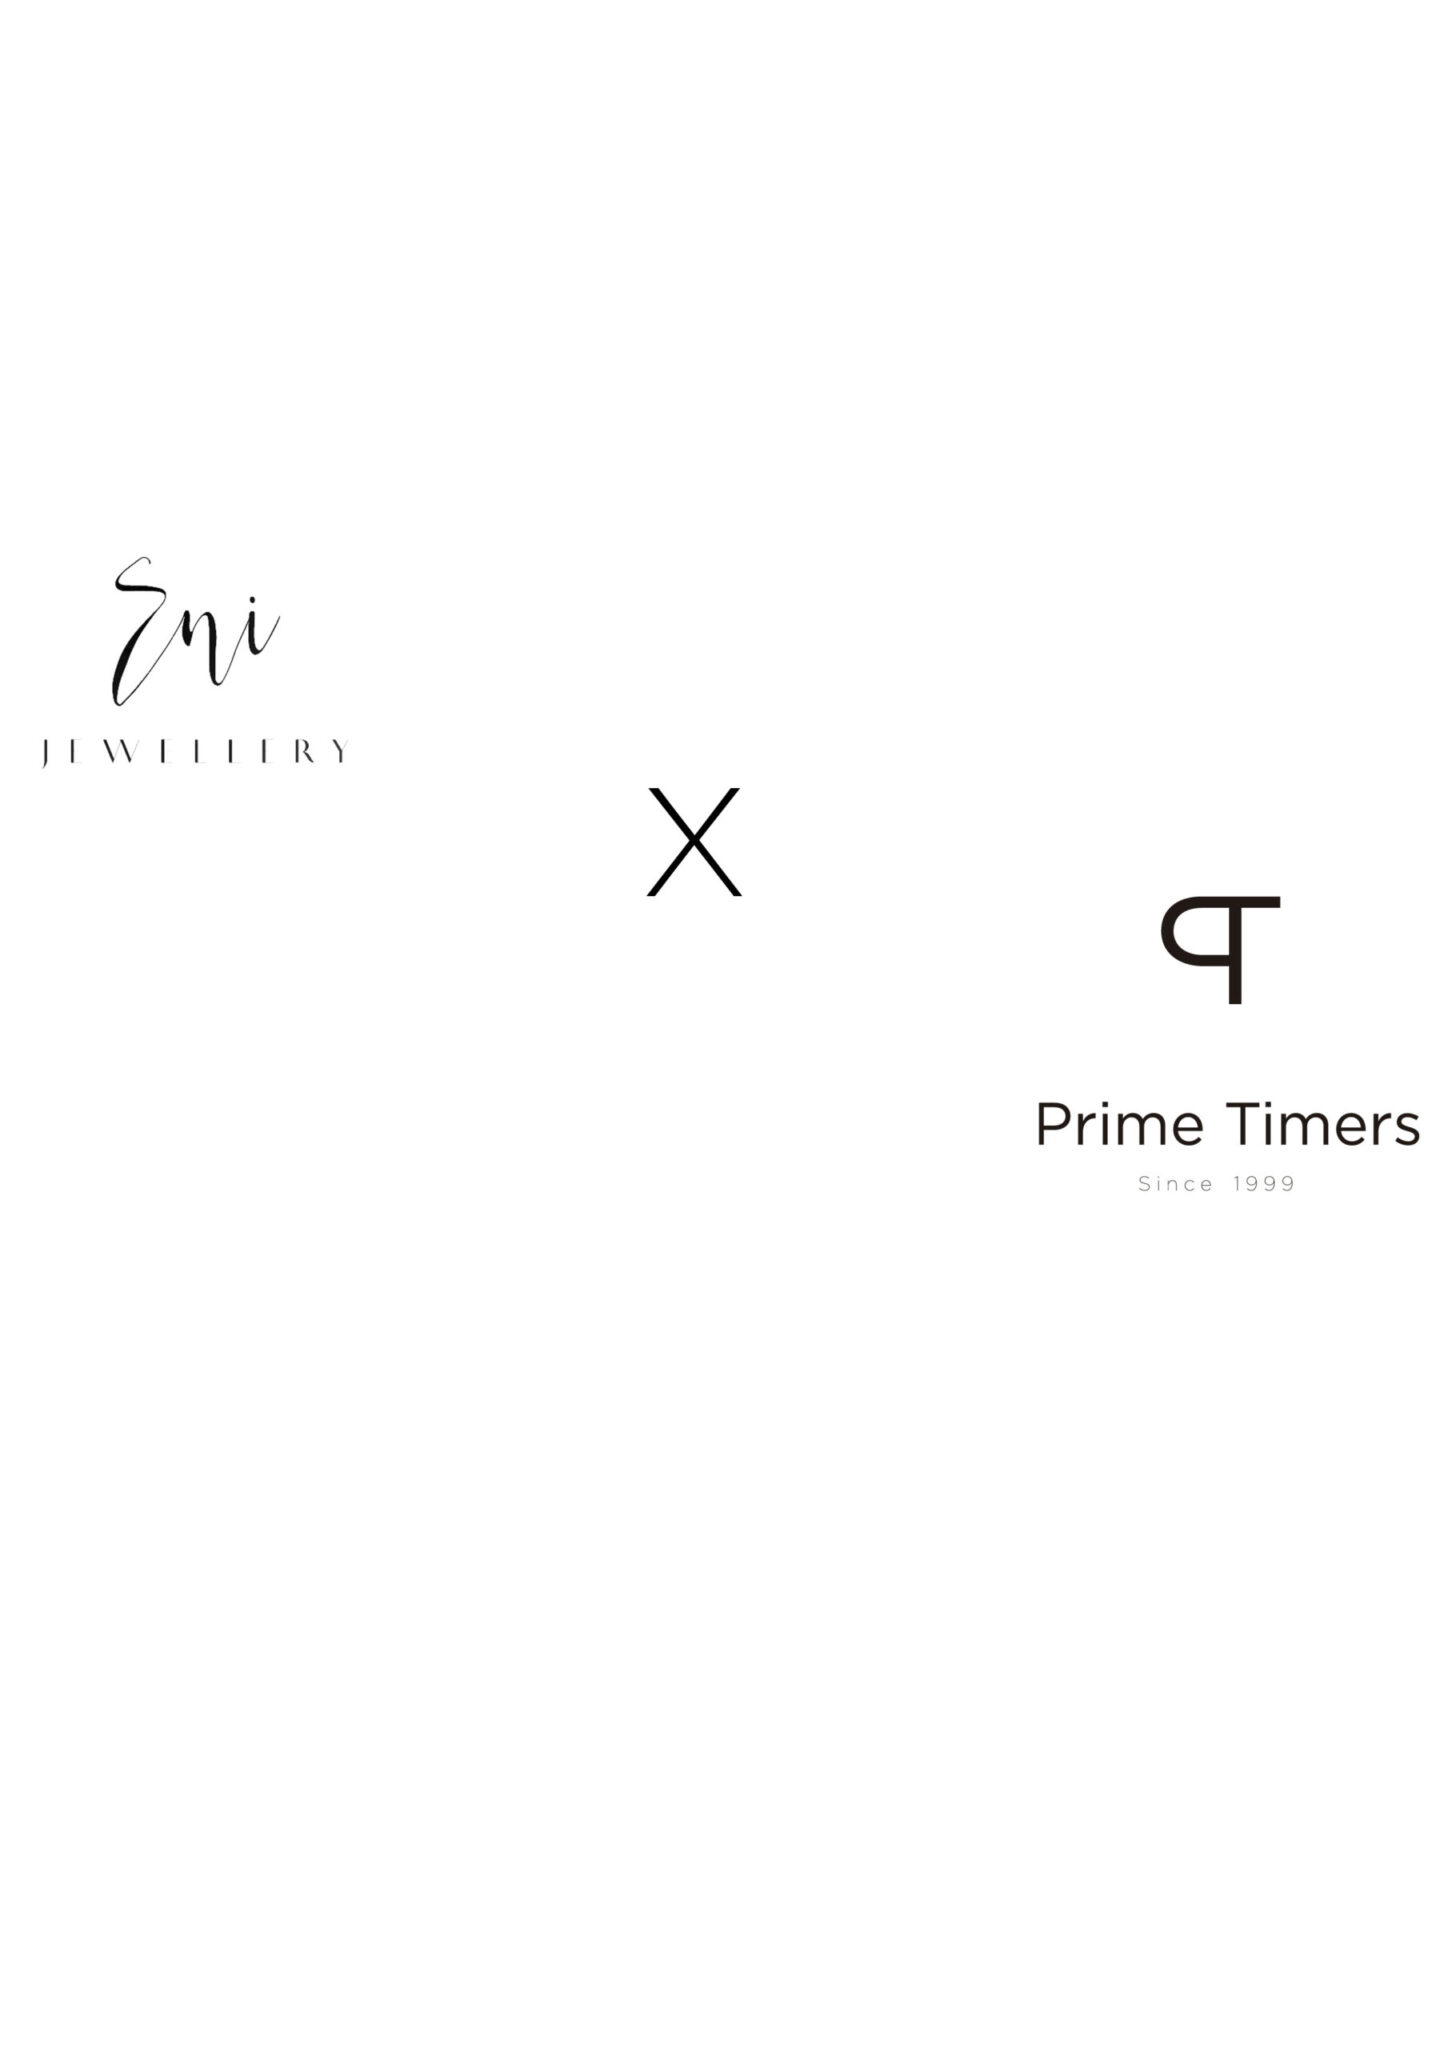 Eni Jewellery x Prime Timers